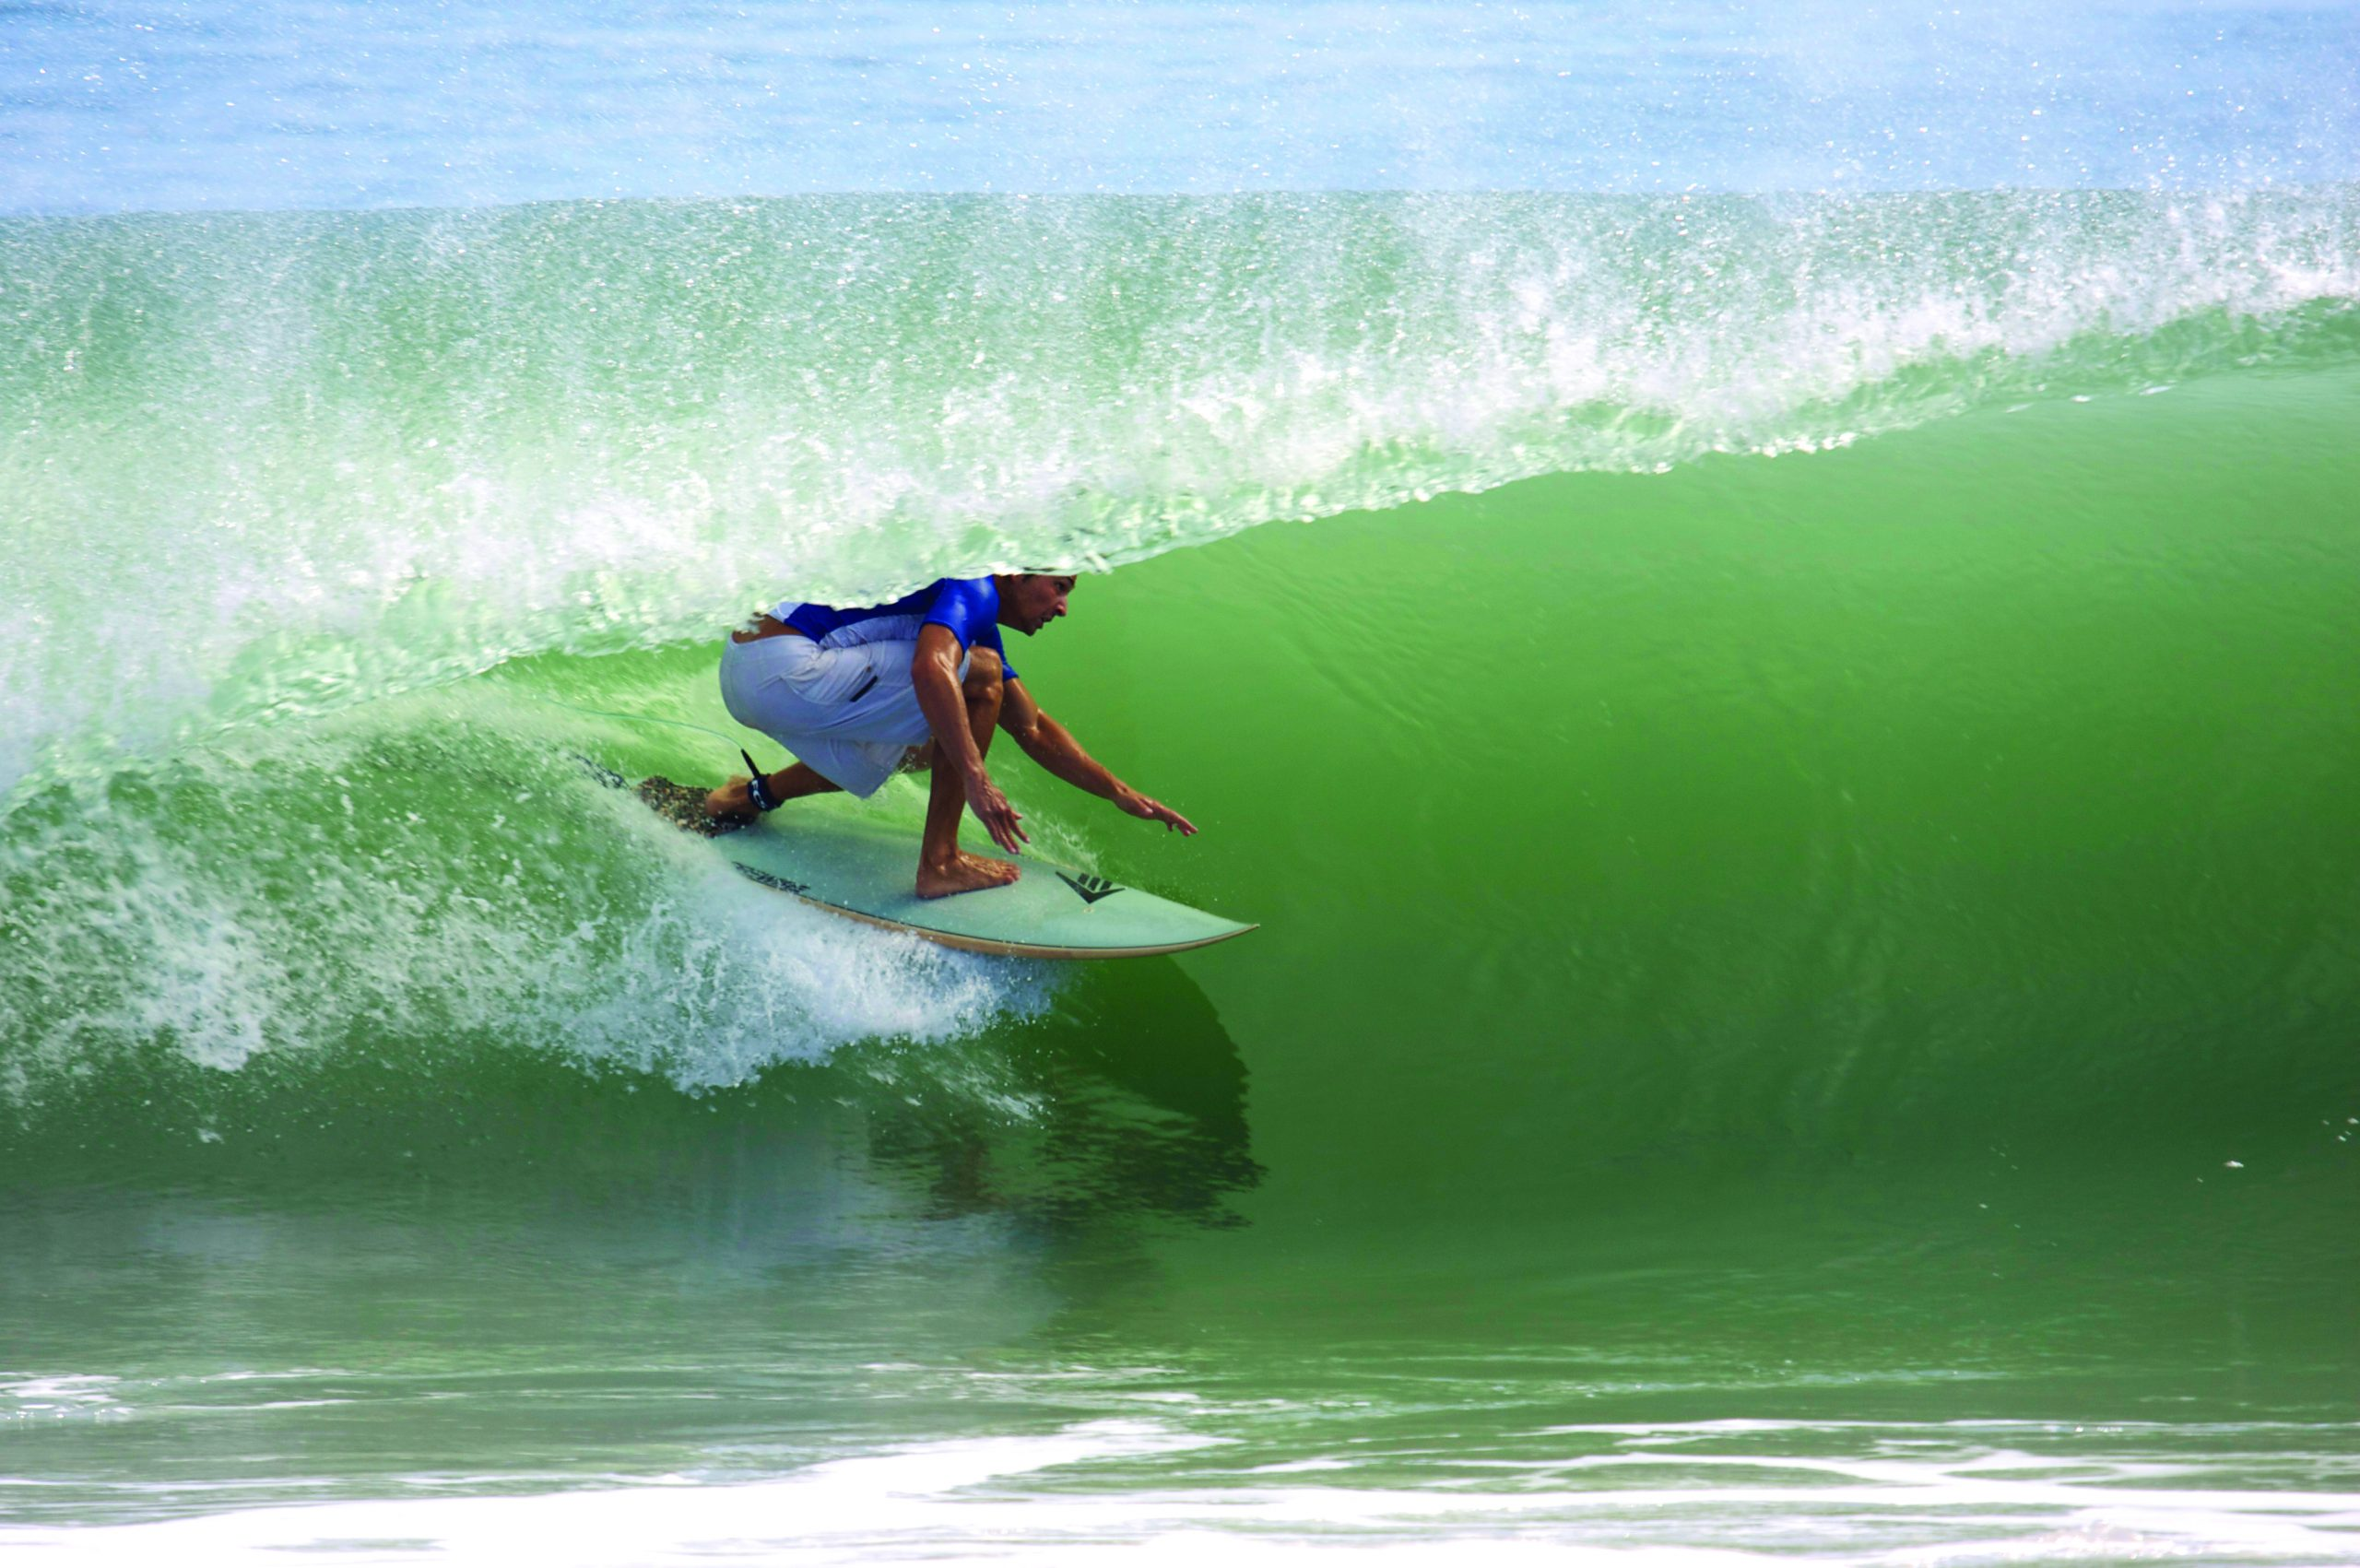 Surfing in Nags Head